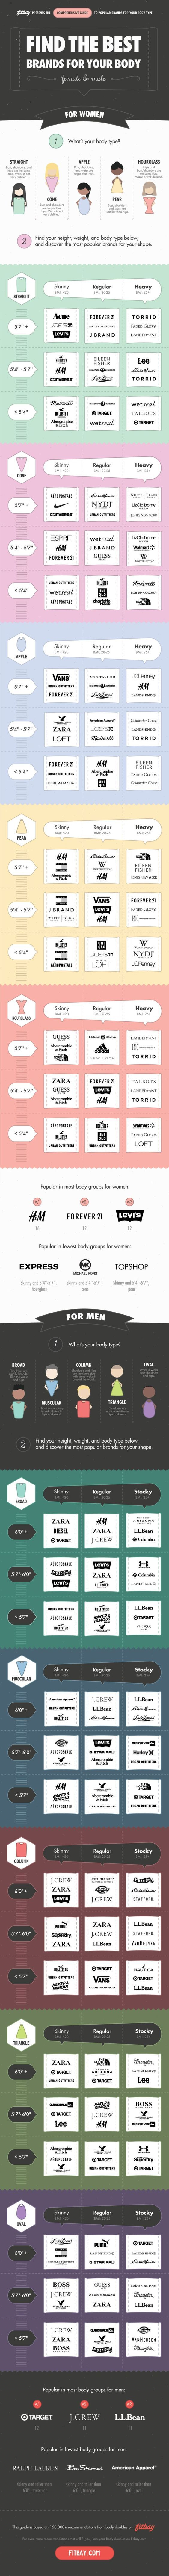 This Graphic Recommends the Best Clothing Brands